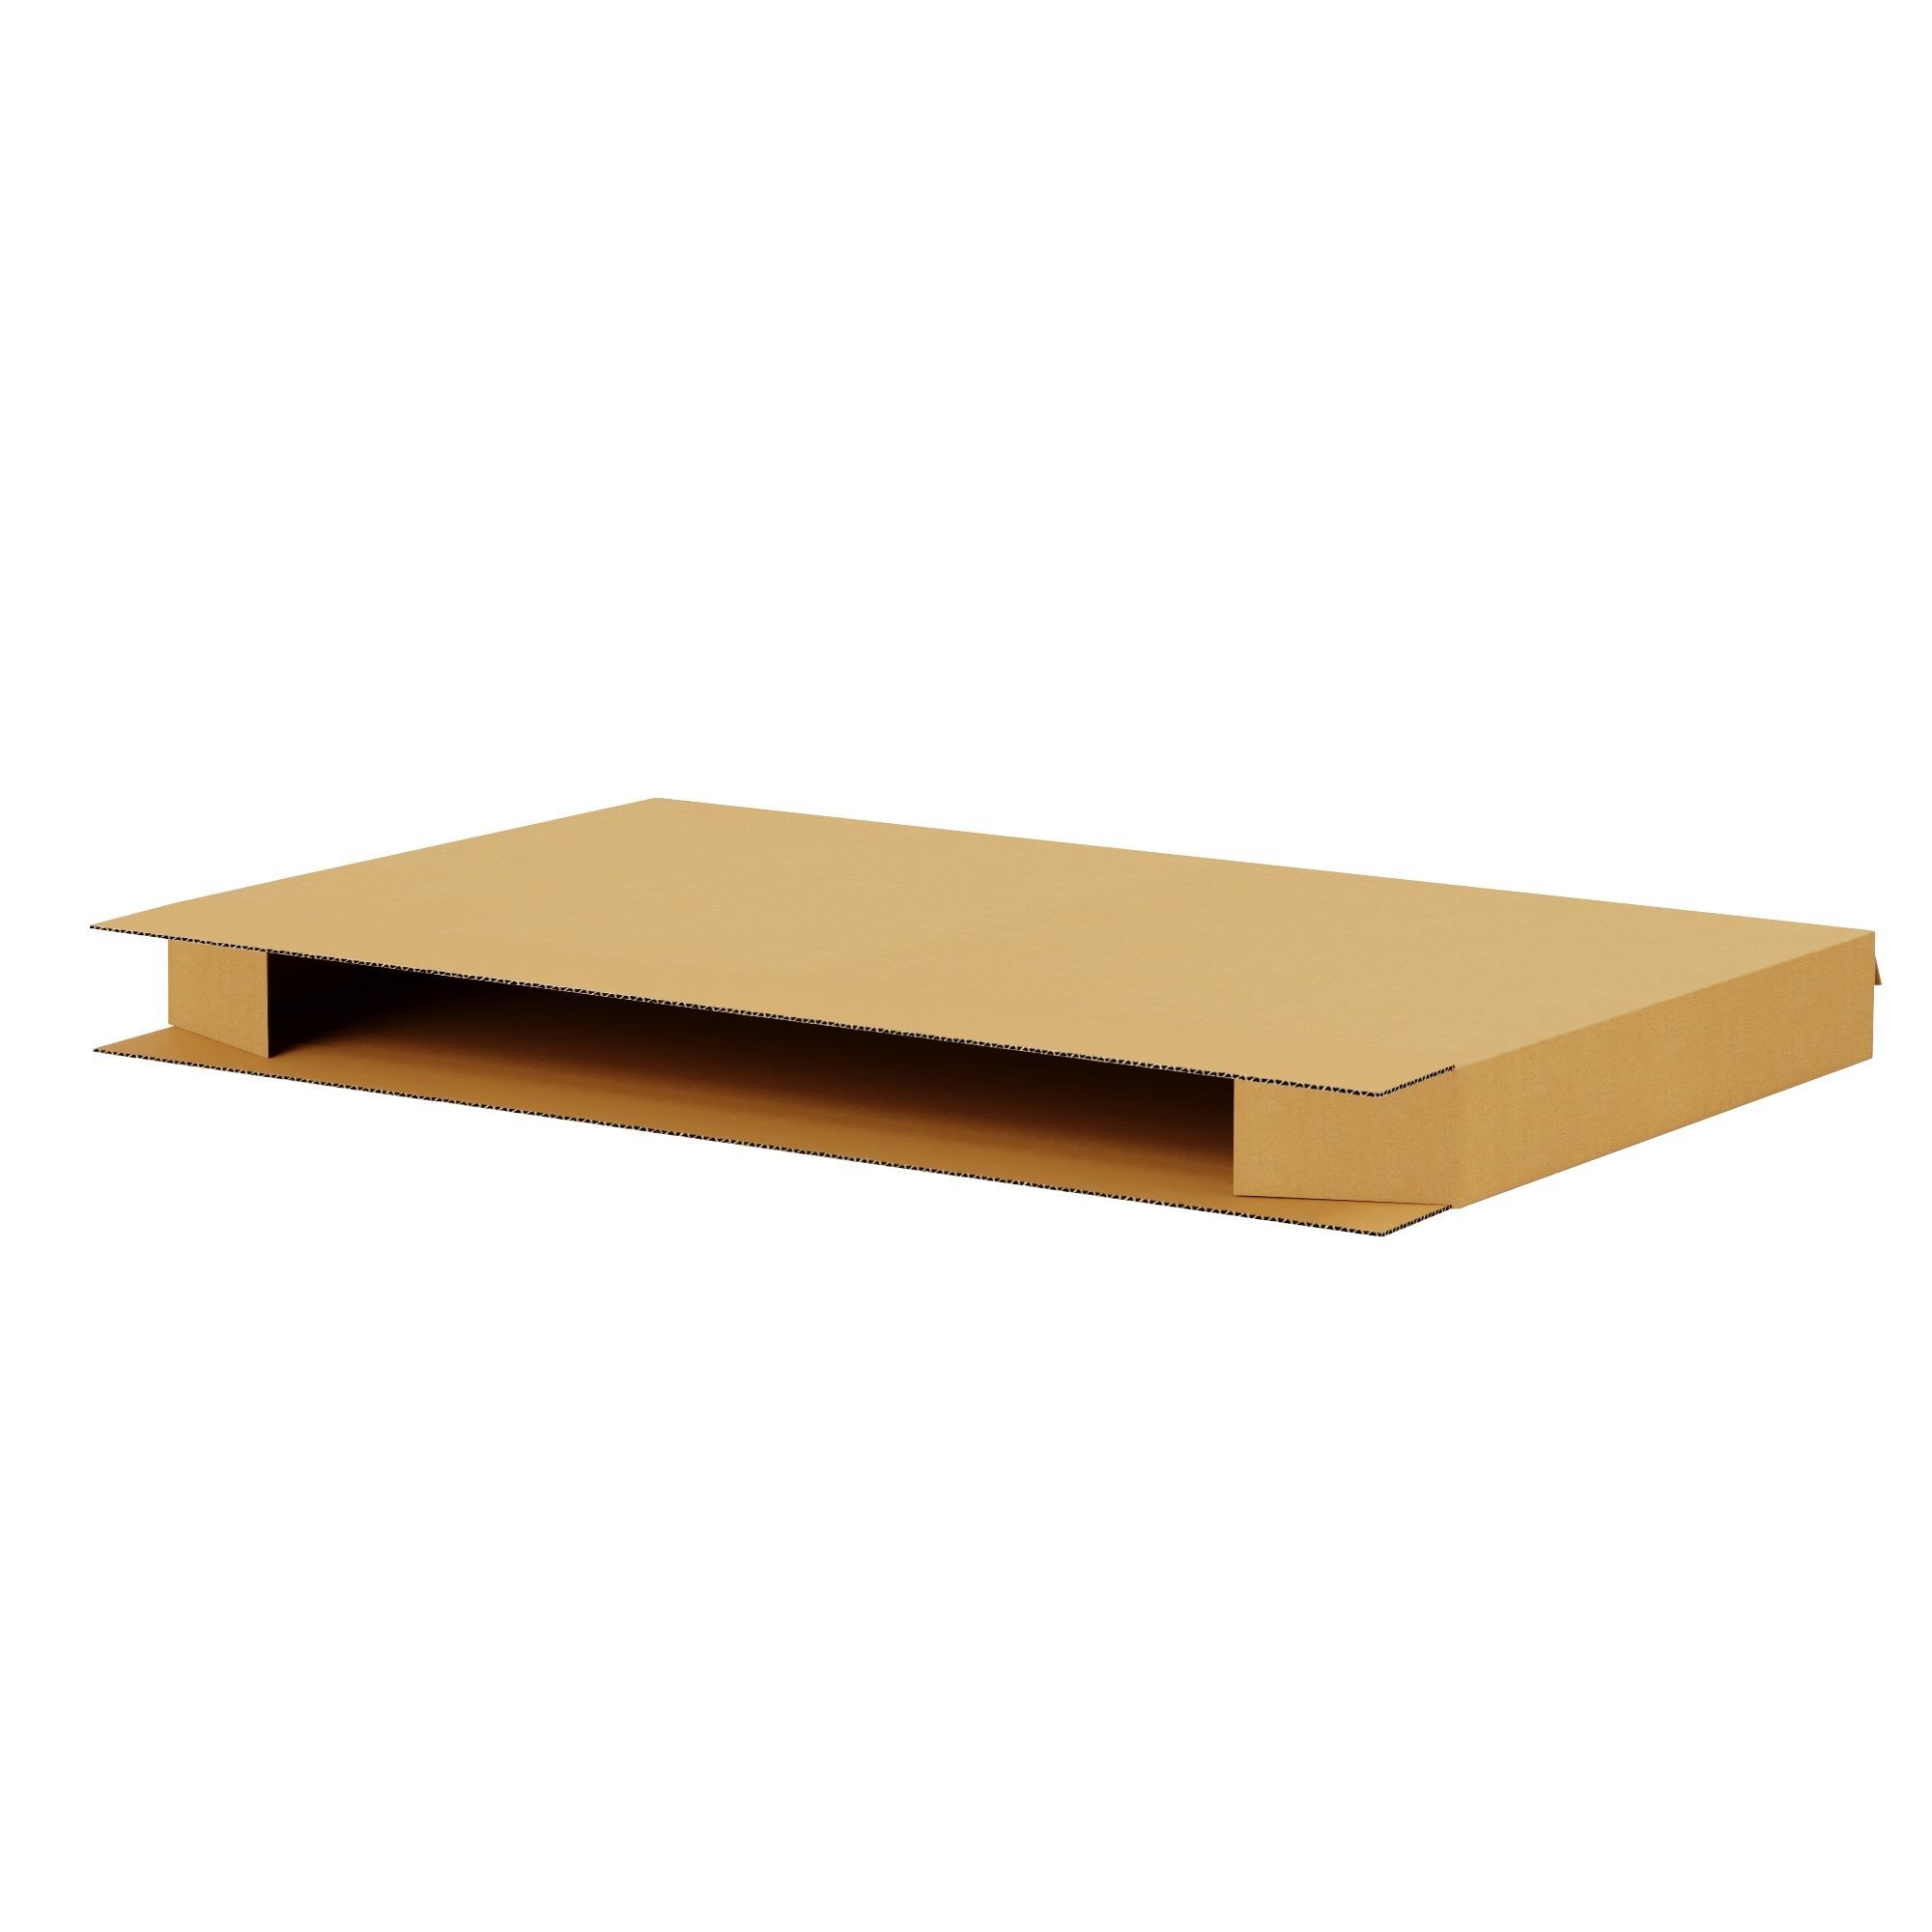 TOTALPACK® Mattress Corrugated Boxes